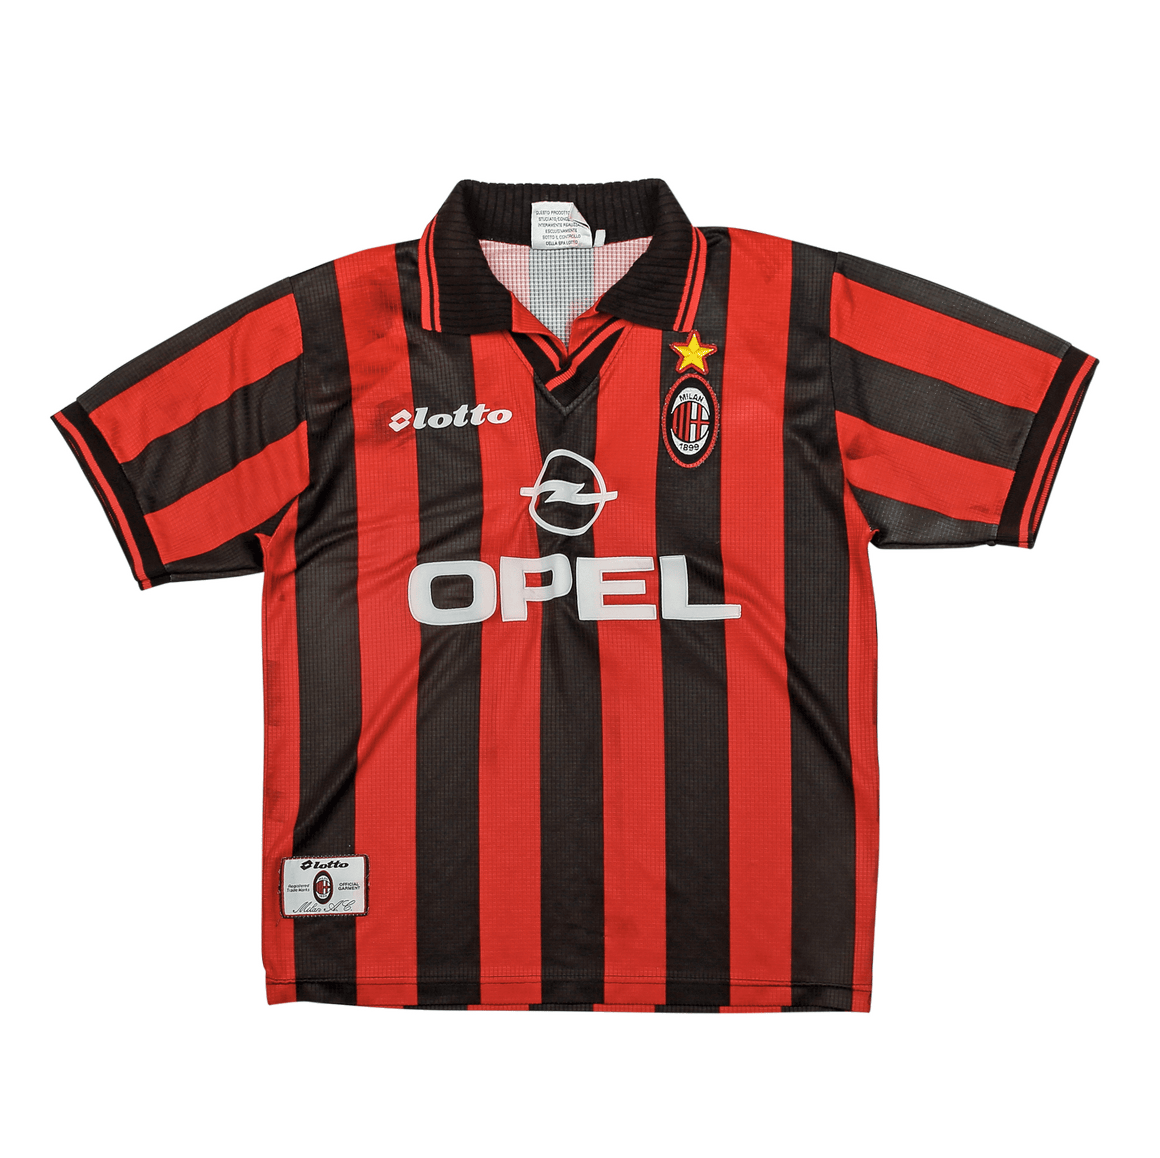 1997-98 AC Milan home shirt S - Football Shirt Collective